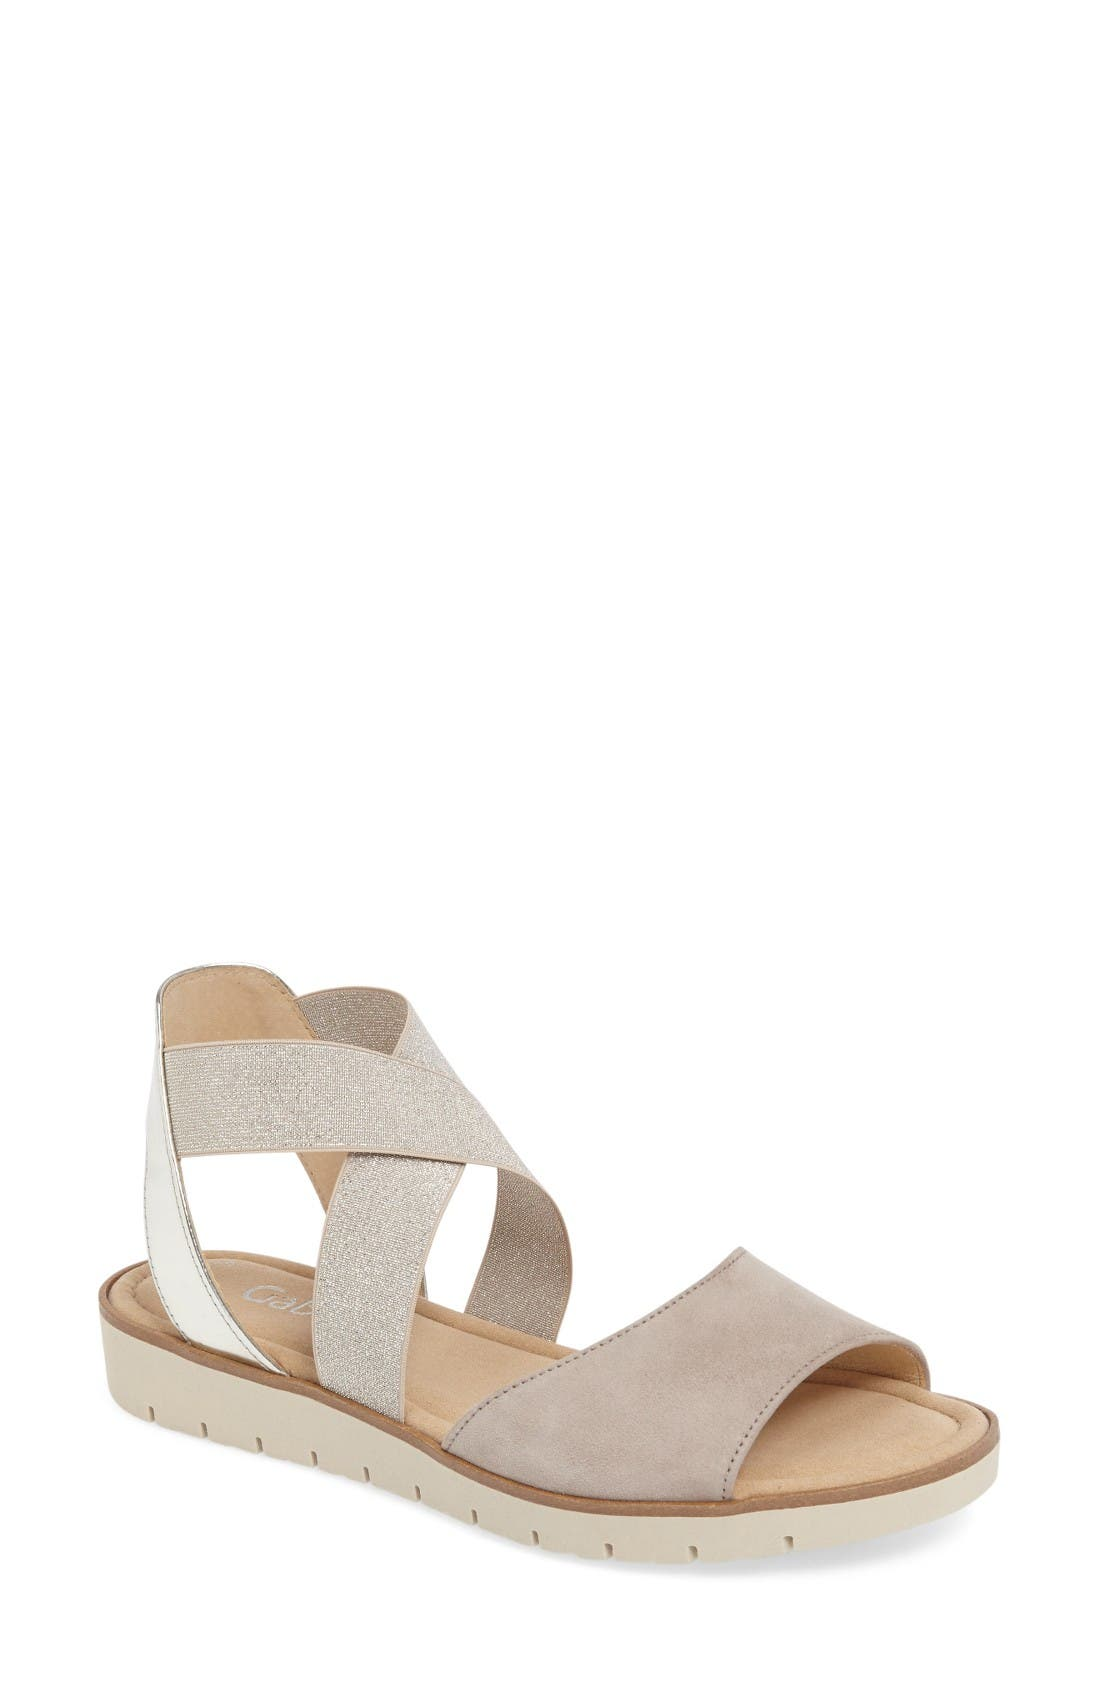 Strappy Sandal,                         Main,                         color, Beige Leather